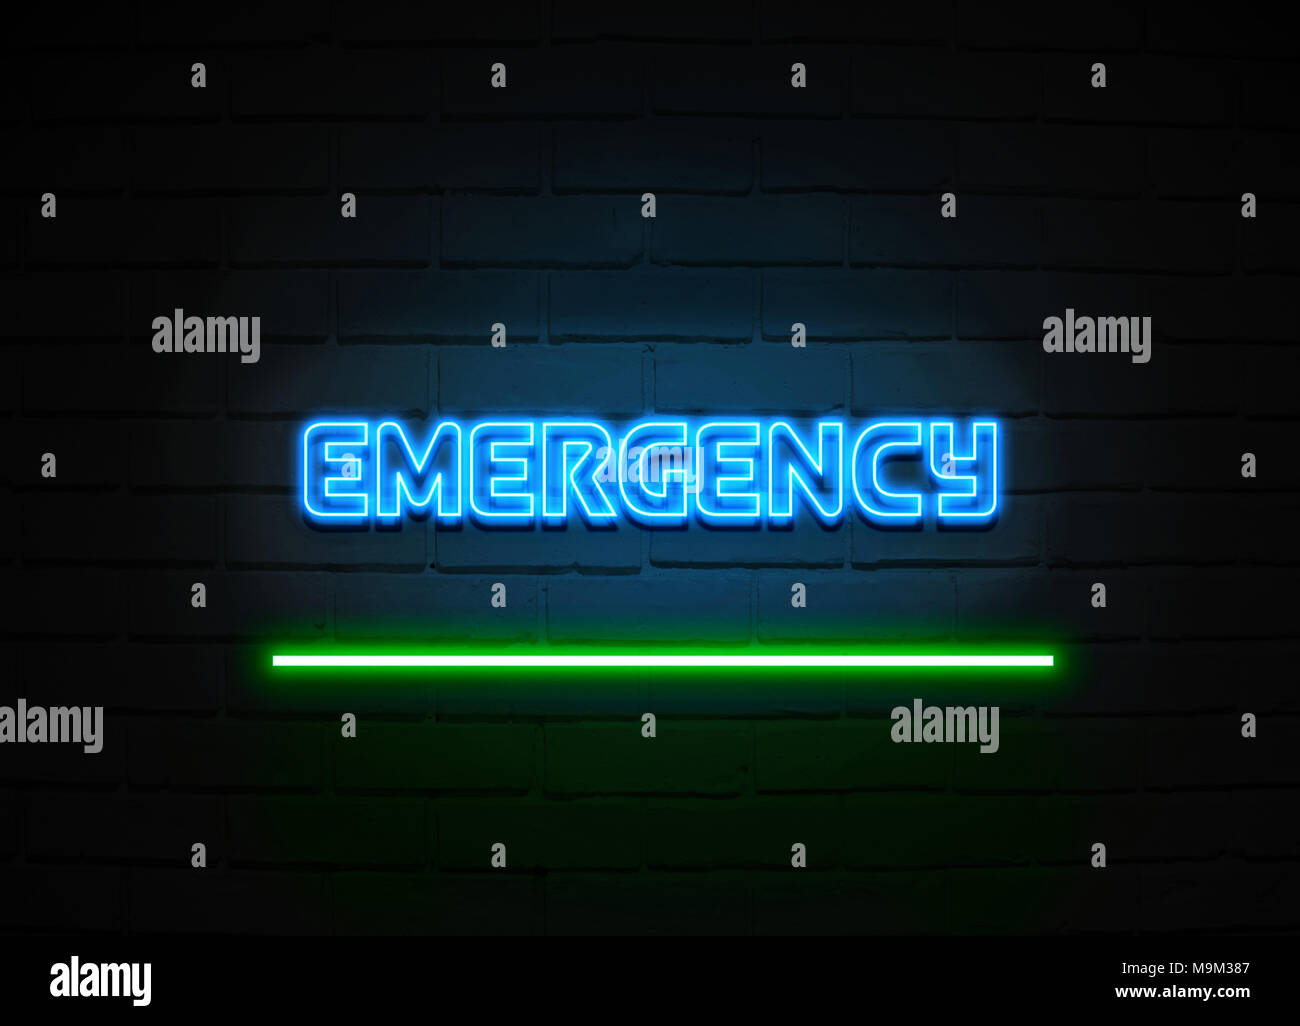 Emergency neon sign - Glowing Neon Sign on brickwall wall - 3D rendered royalty free stock illustration. - Stock Image